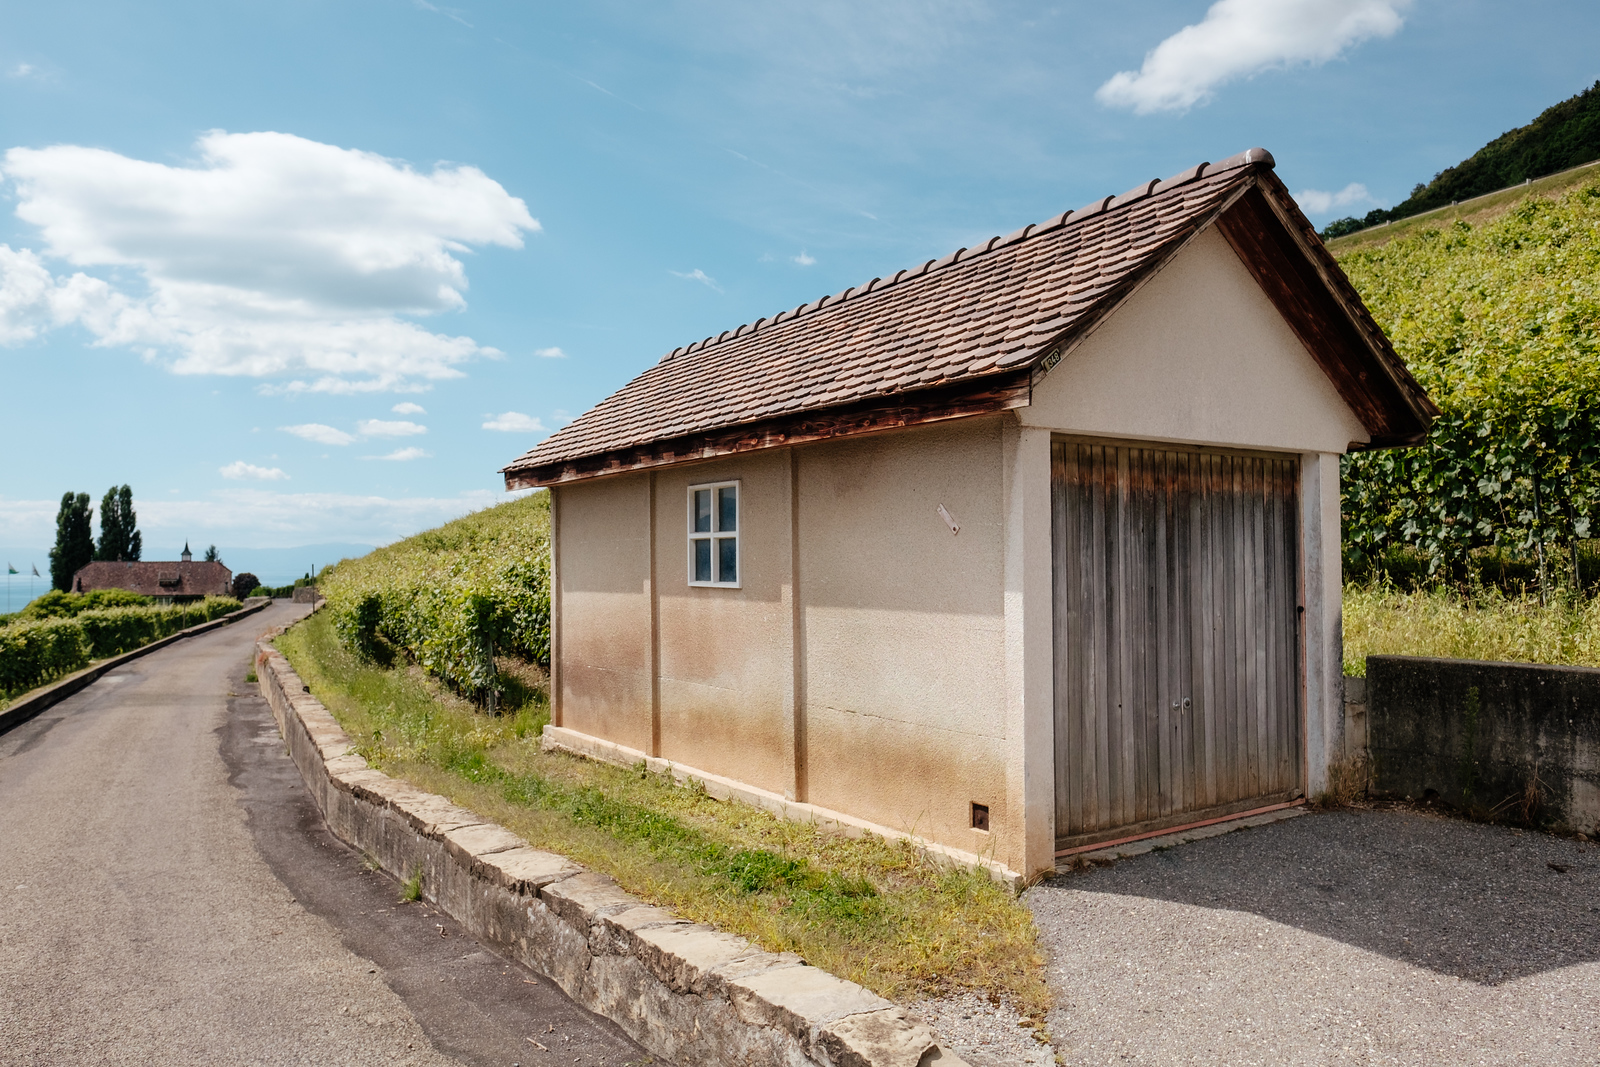 A shed in the vineyards, Lavaux